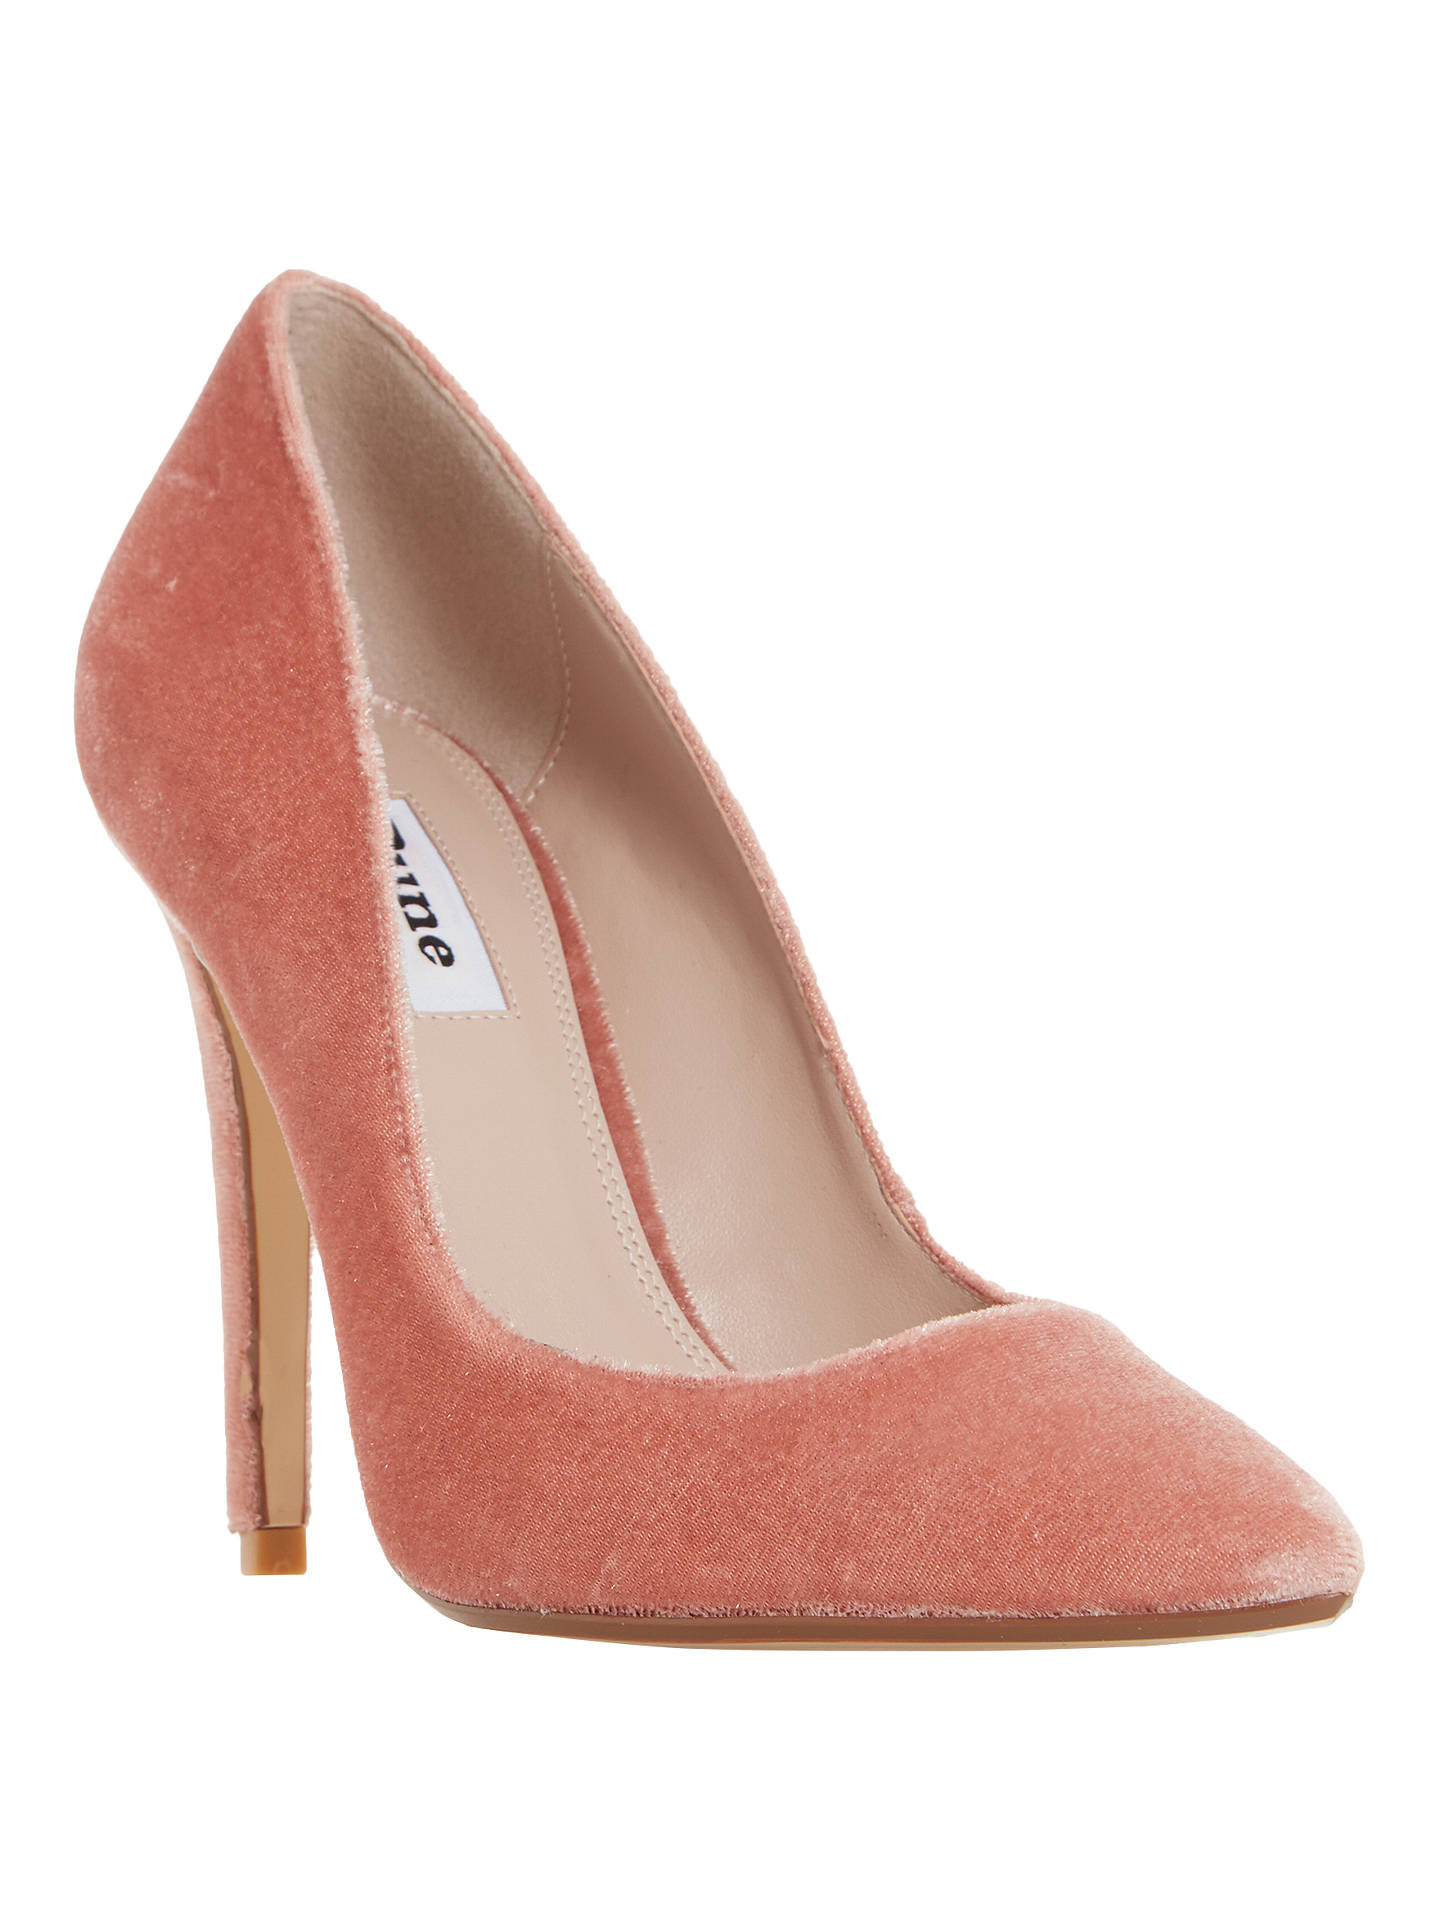 19940dfa2d9f Dune Aiyana Pointed Toe Court Shoes at John Lewis   Partners